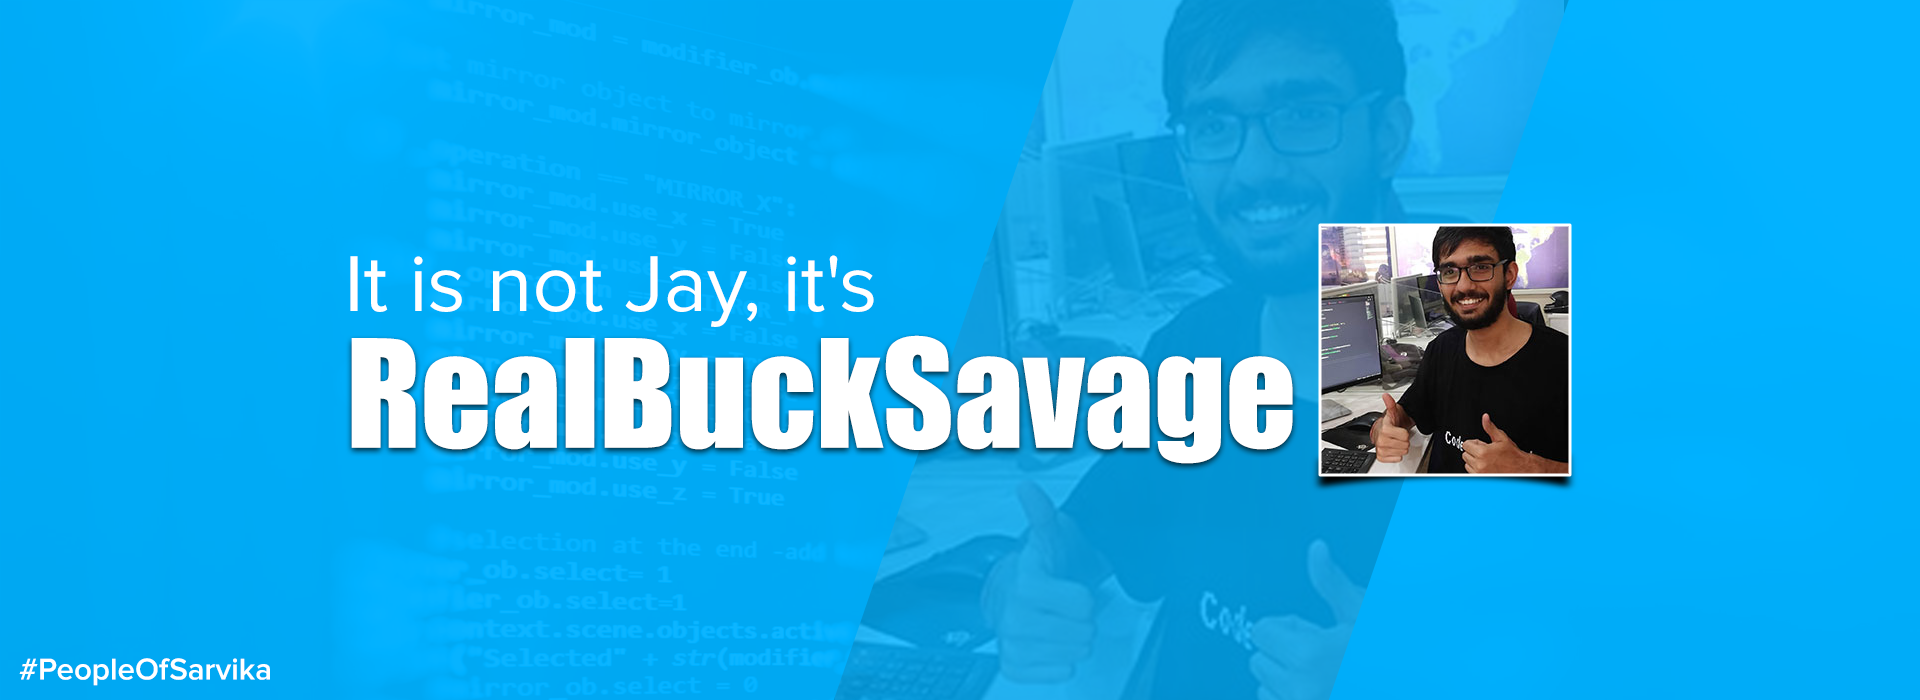 It-is-not-Jay,-it's-RealBuckSavage-_-#PeopleOfSarvika